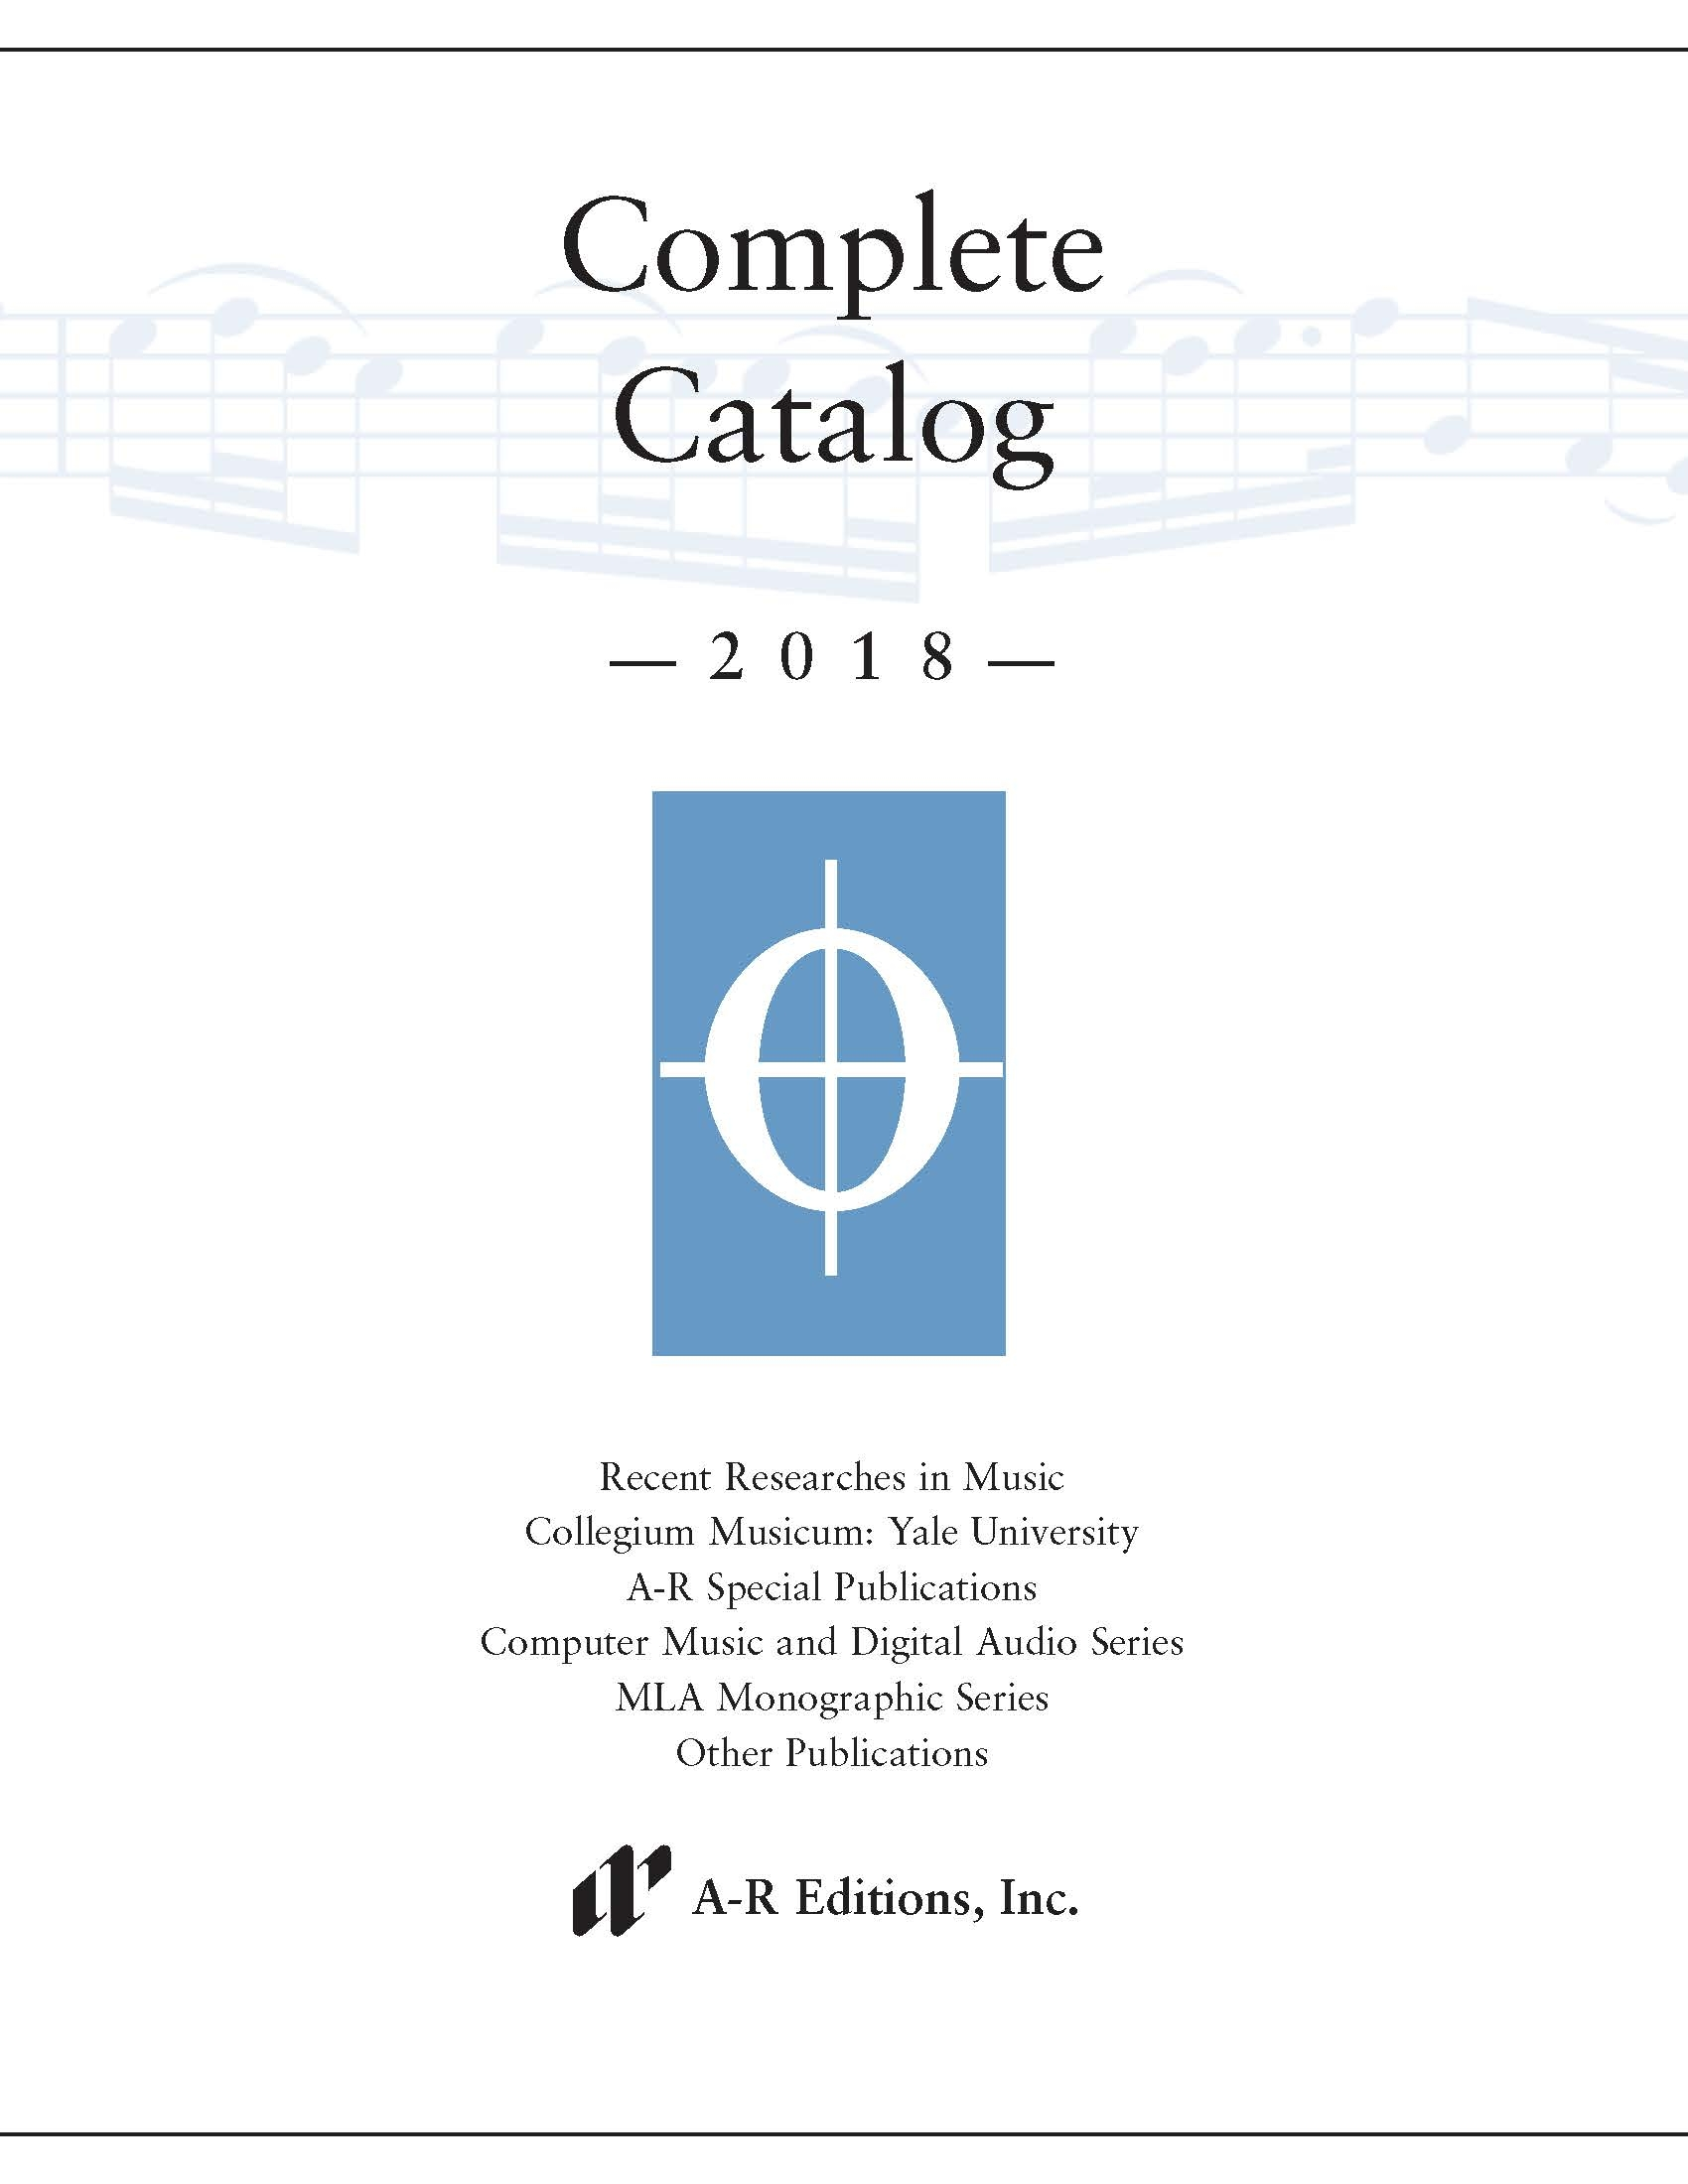 2018 Complete Catalog